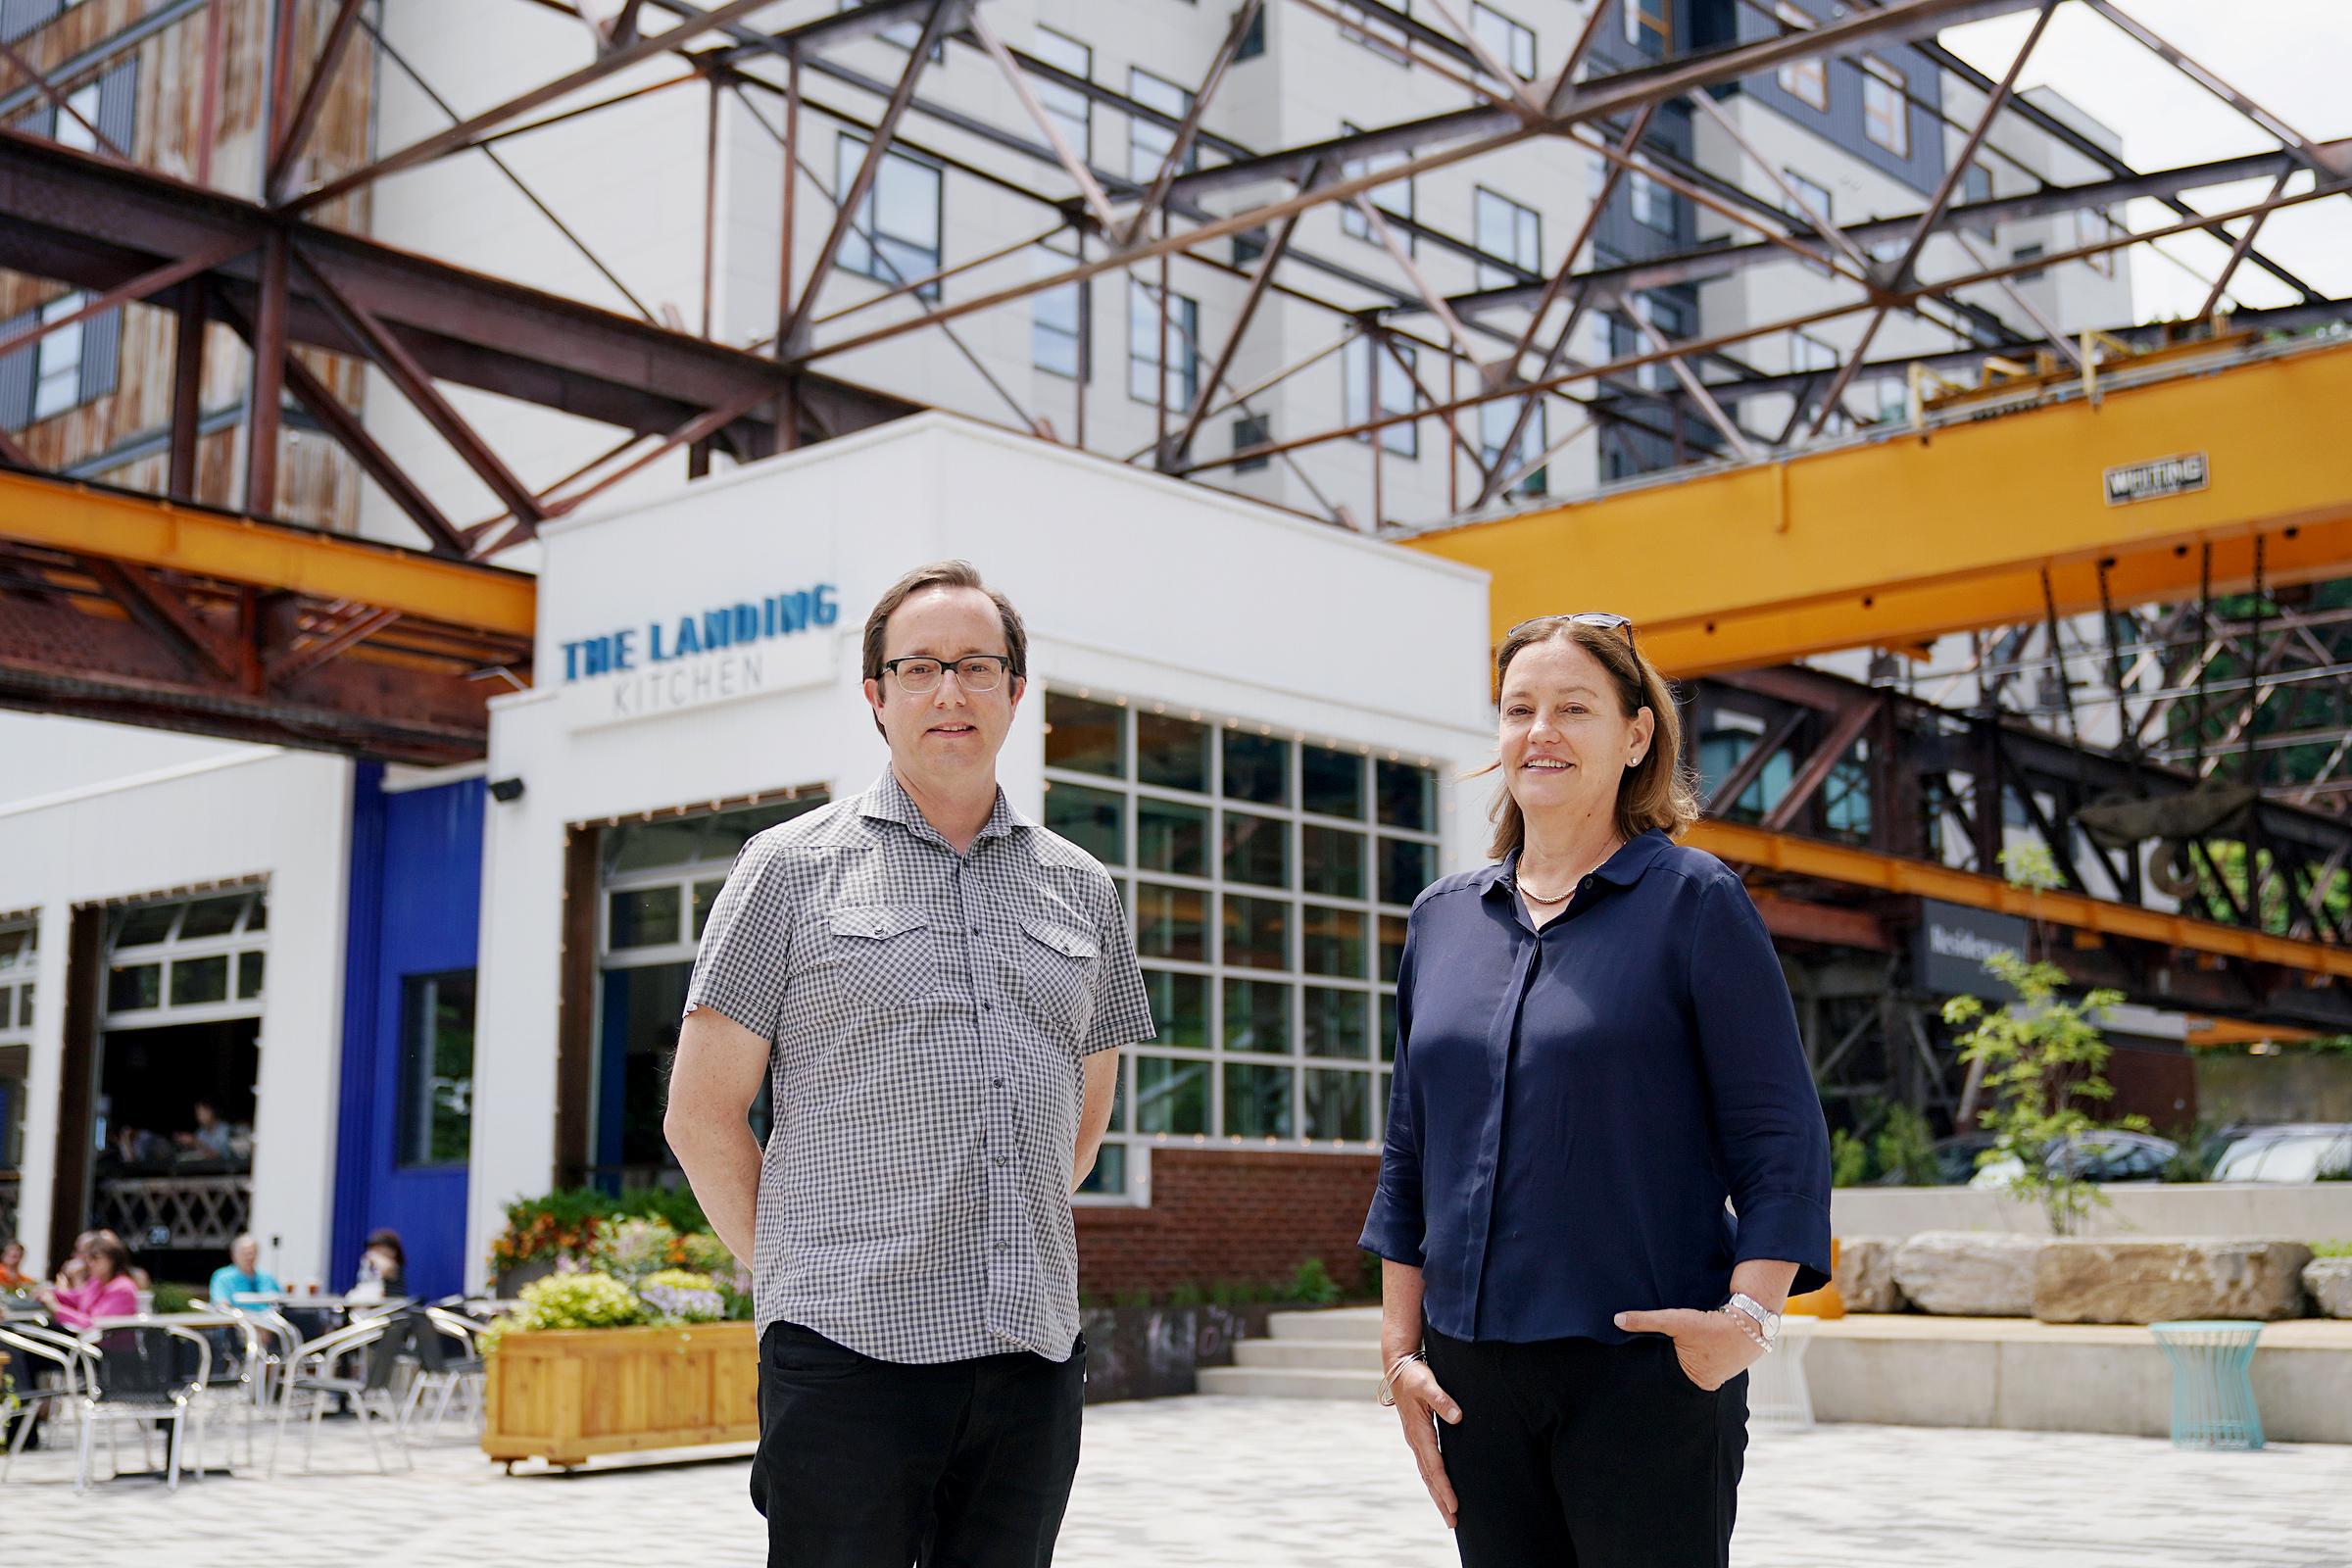 Penn Group architect Stephen Gibson (left) and co-owner Donna Galvin stand for a portrait at the Ironworks at Pencoyd Landing in Bala Cynwyd, Pa., on Wednesday, June 2, 2021. The new development, which opened earlier this year with a restaurant and hotel, is located on the site of the former Pencoyd Iron Works along the Schuylkill.